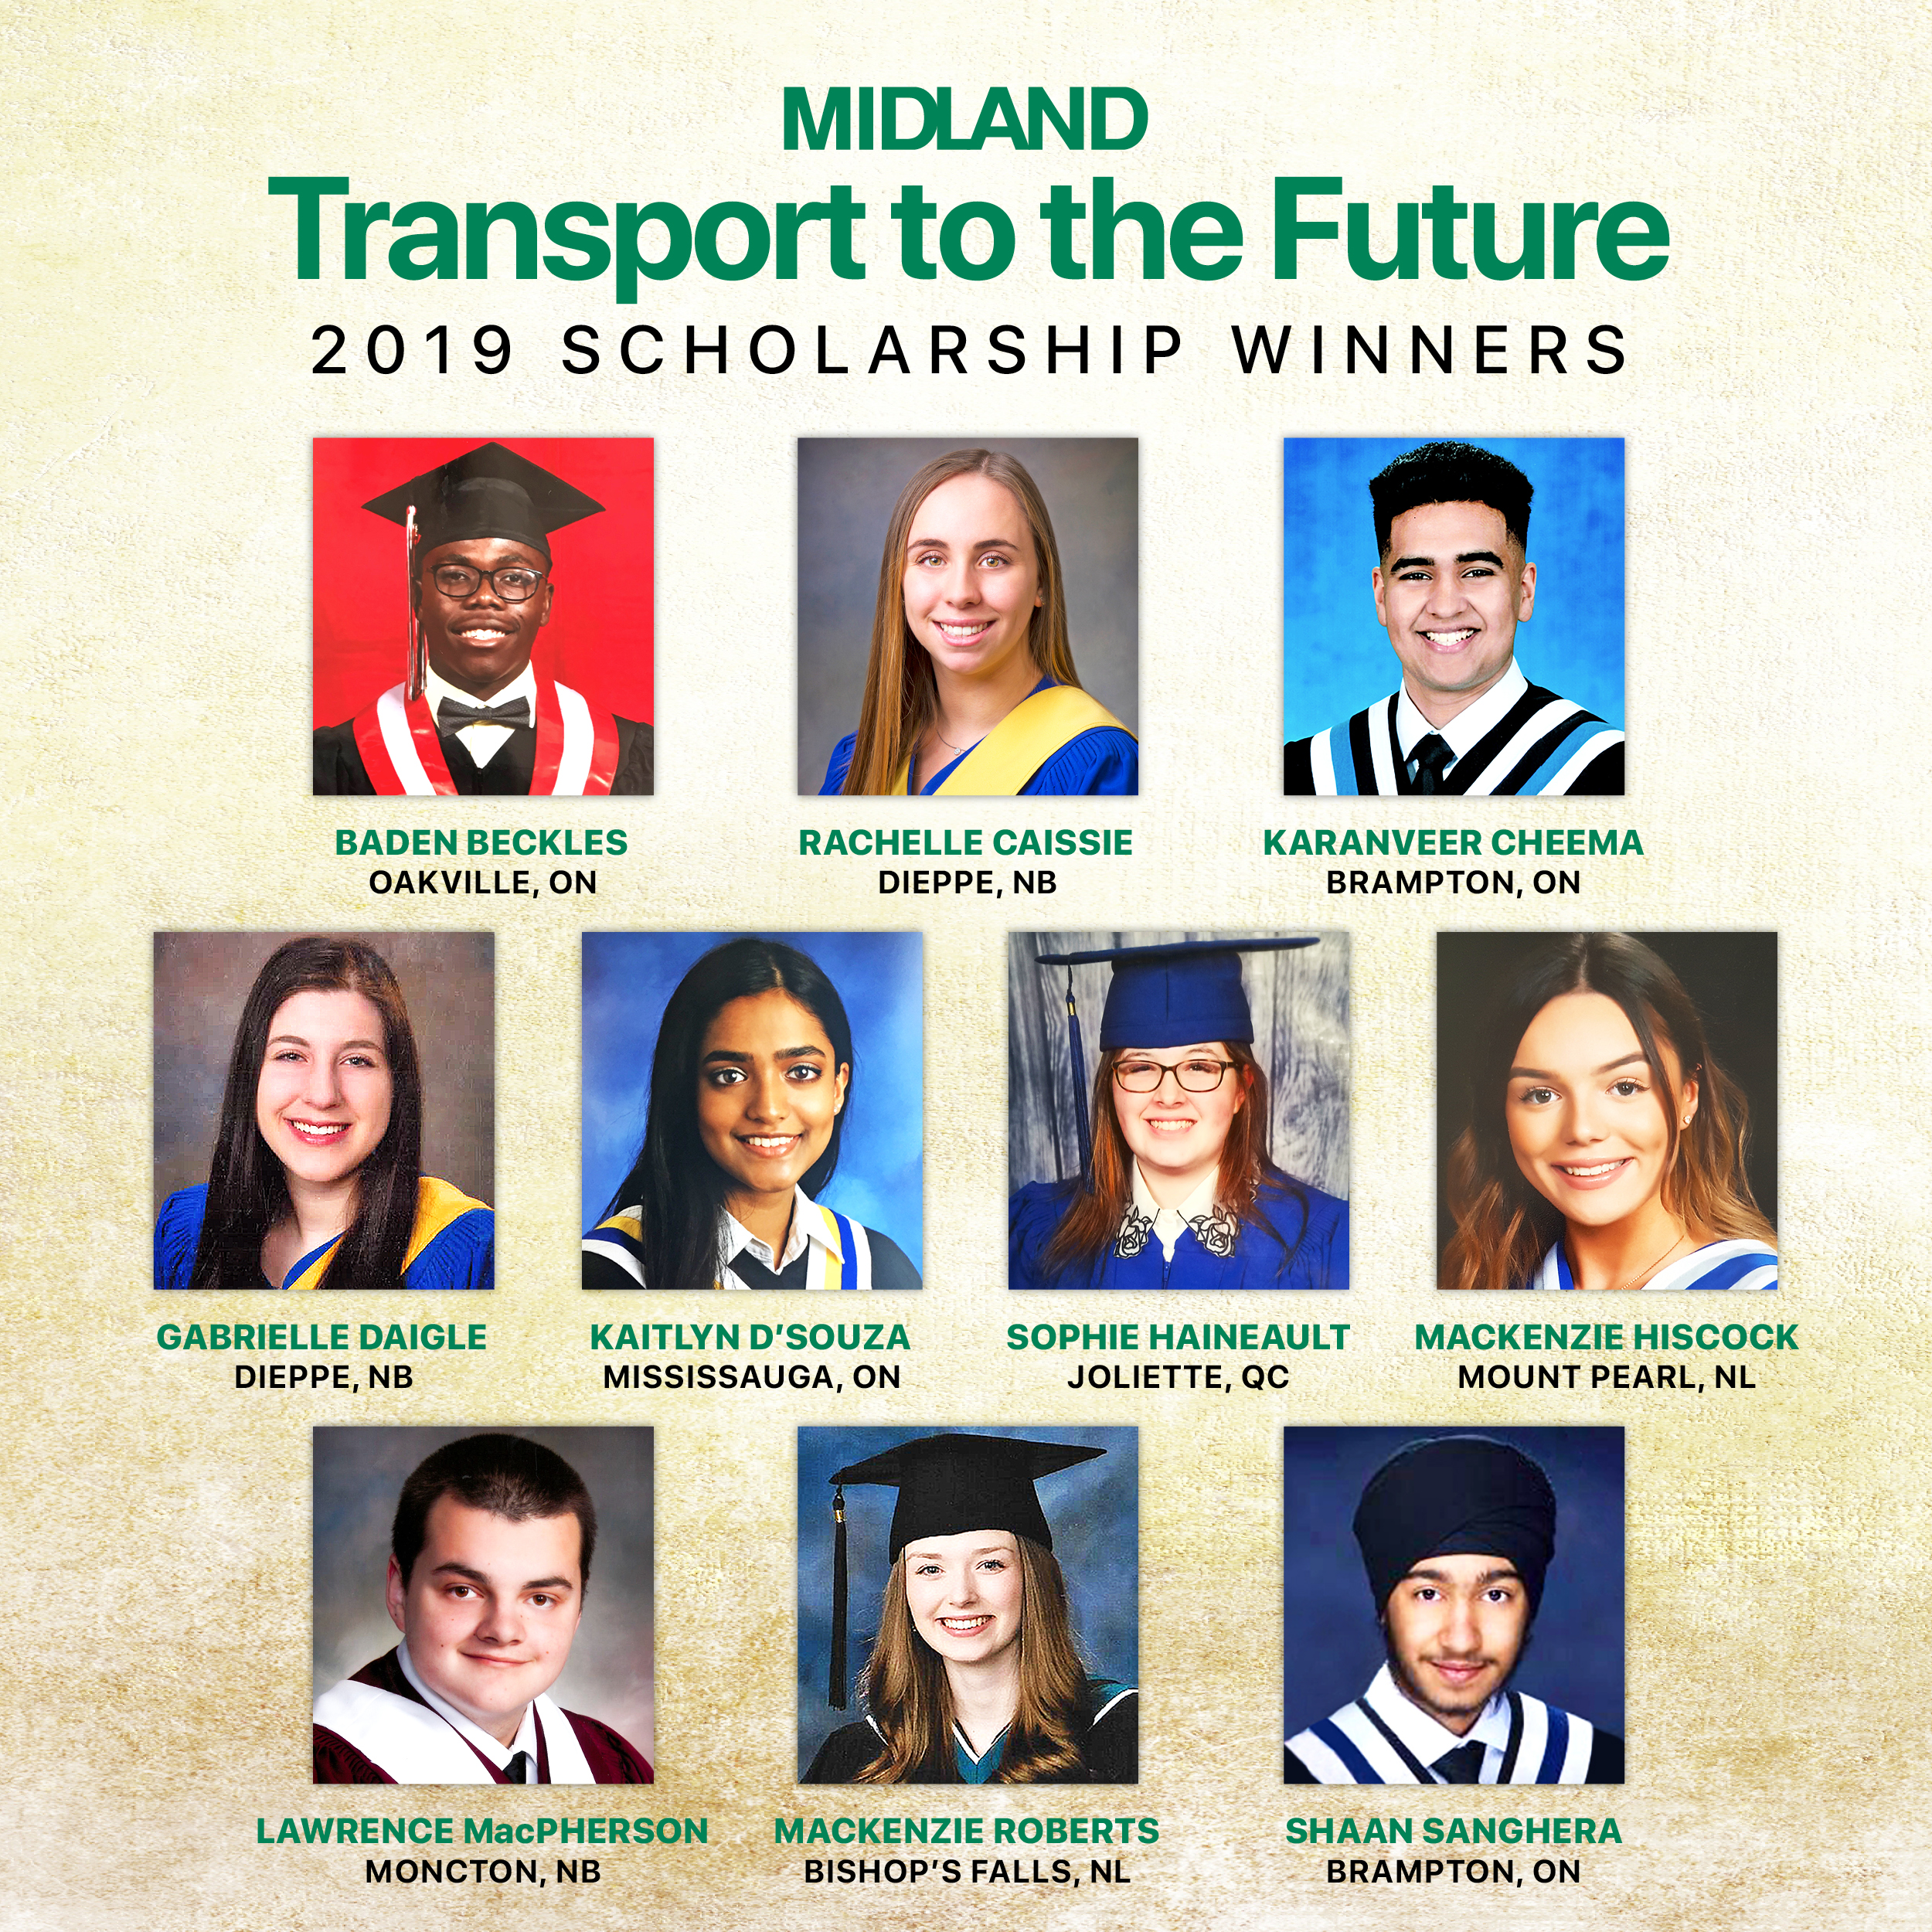 2019 Transport to the Future Scholarship